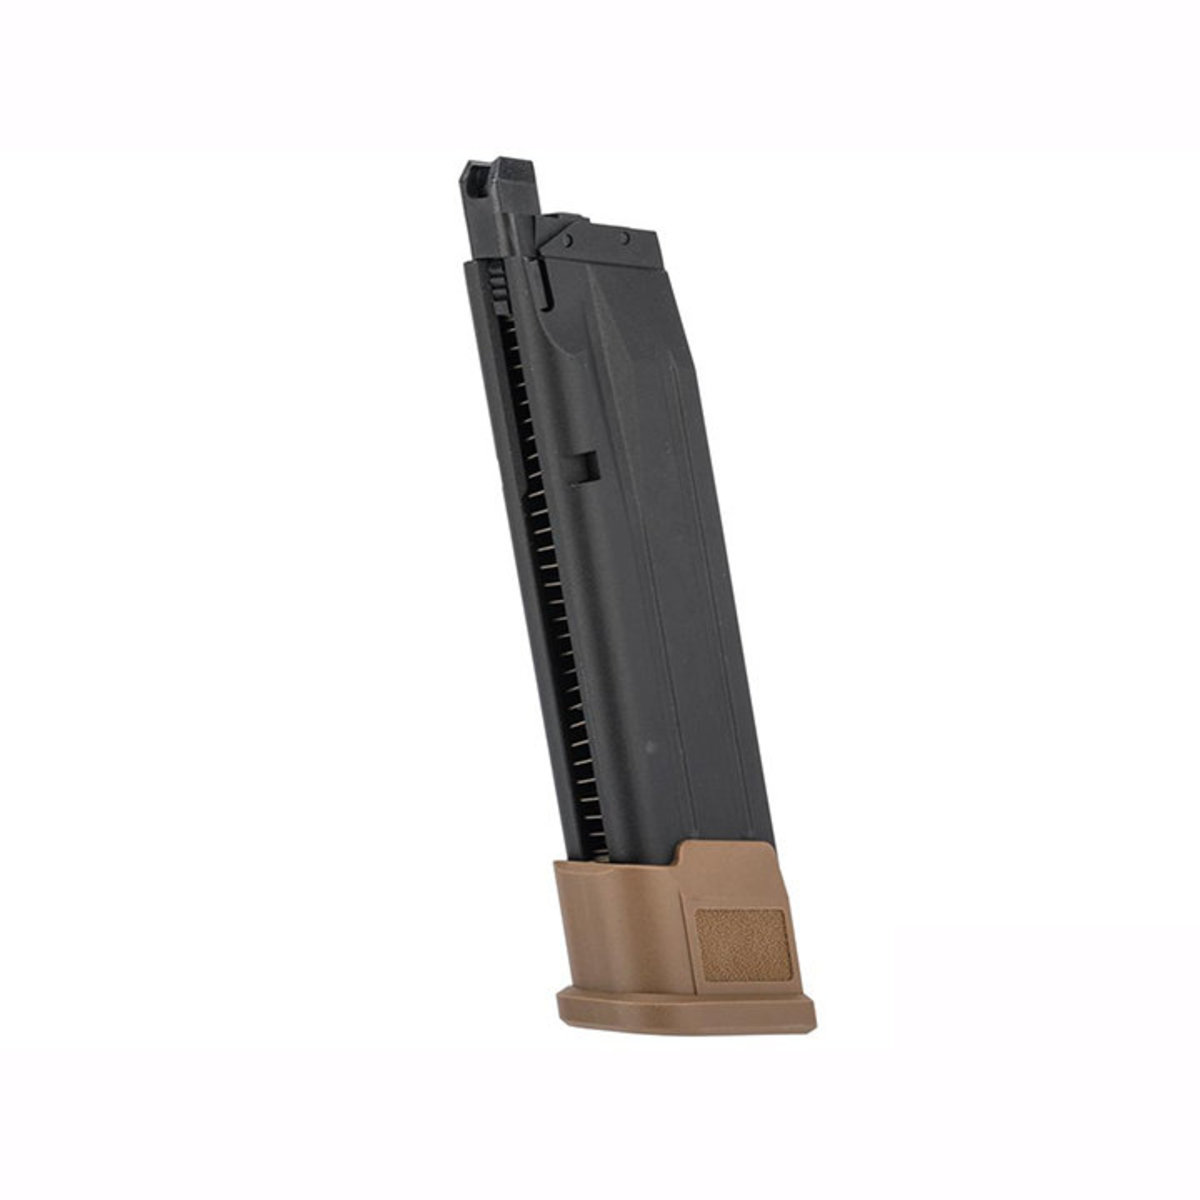 View larger image of Sig Sauer 21rd ProForce P320 M17 CO2 Airsoft Magazine